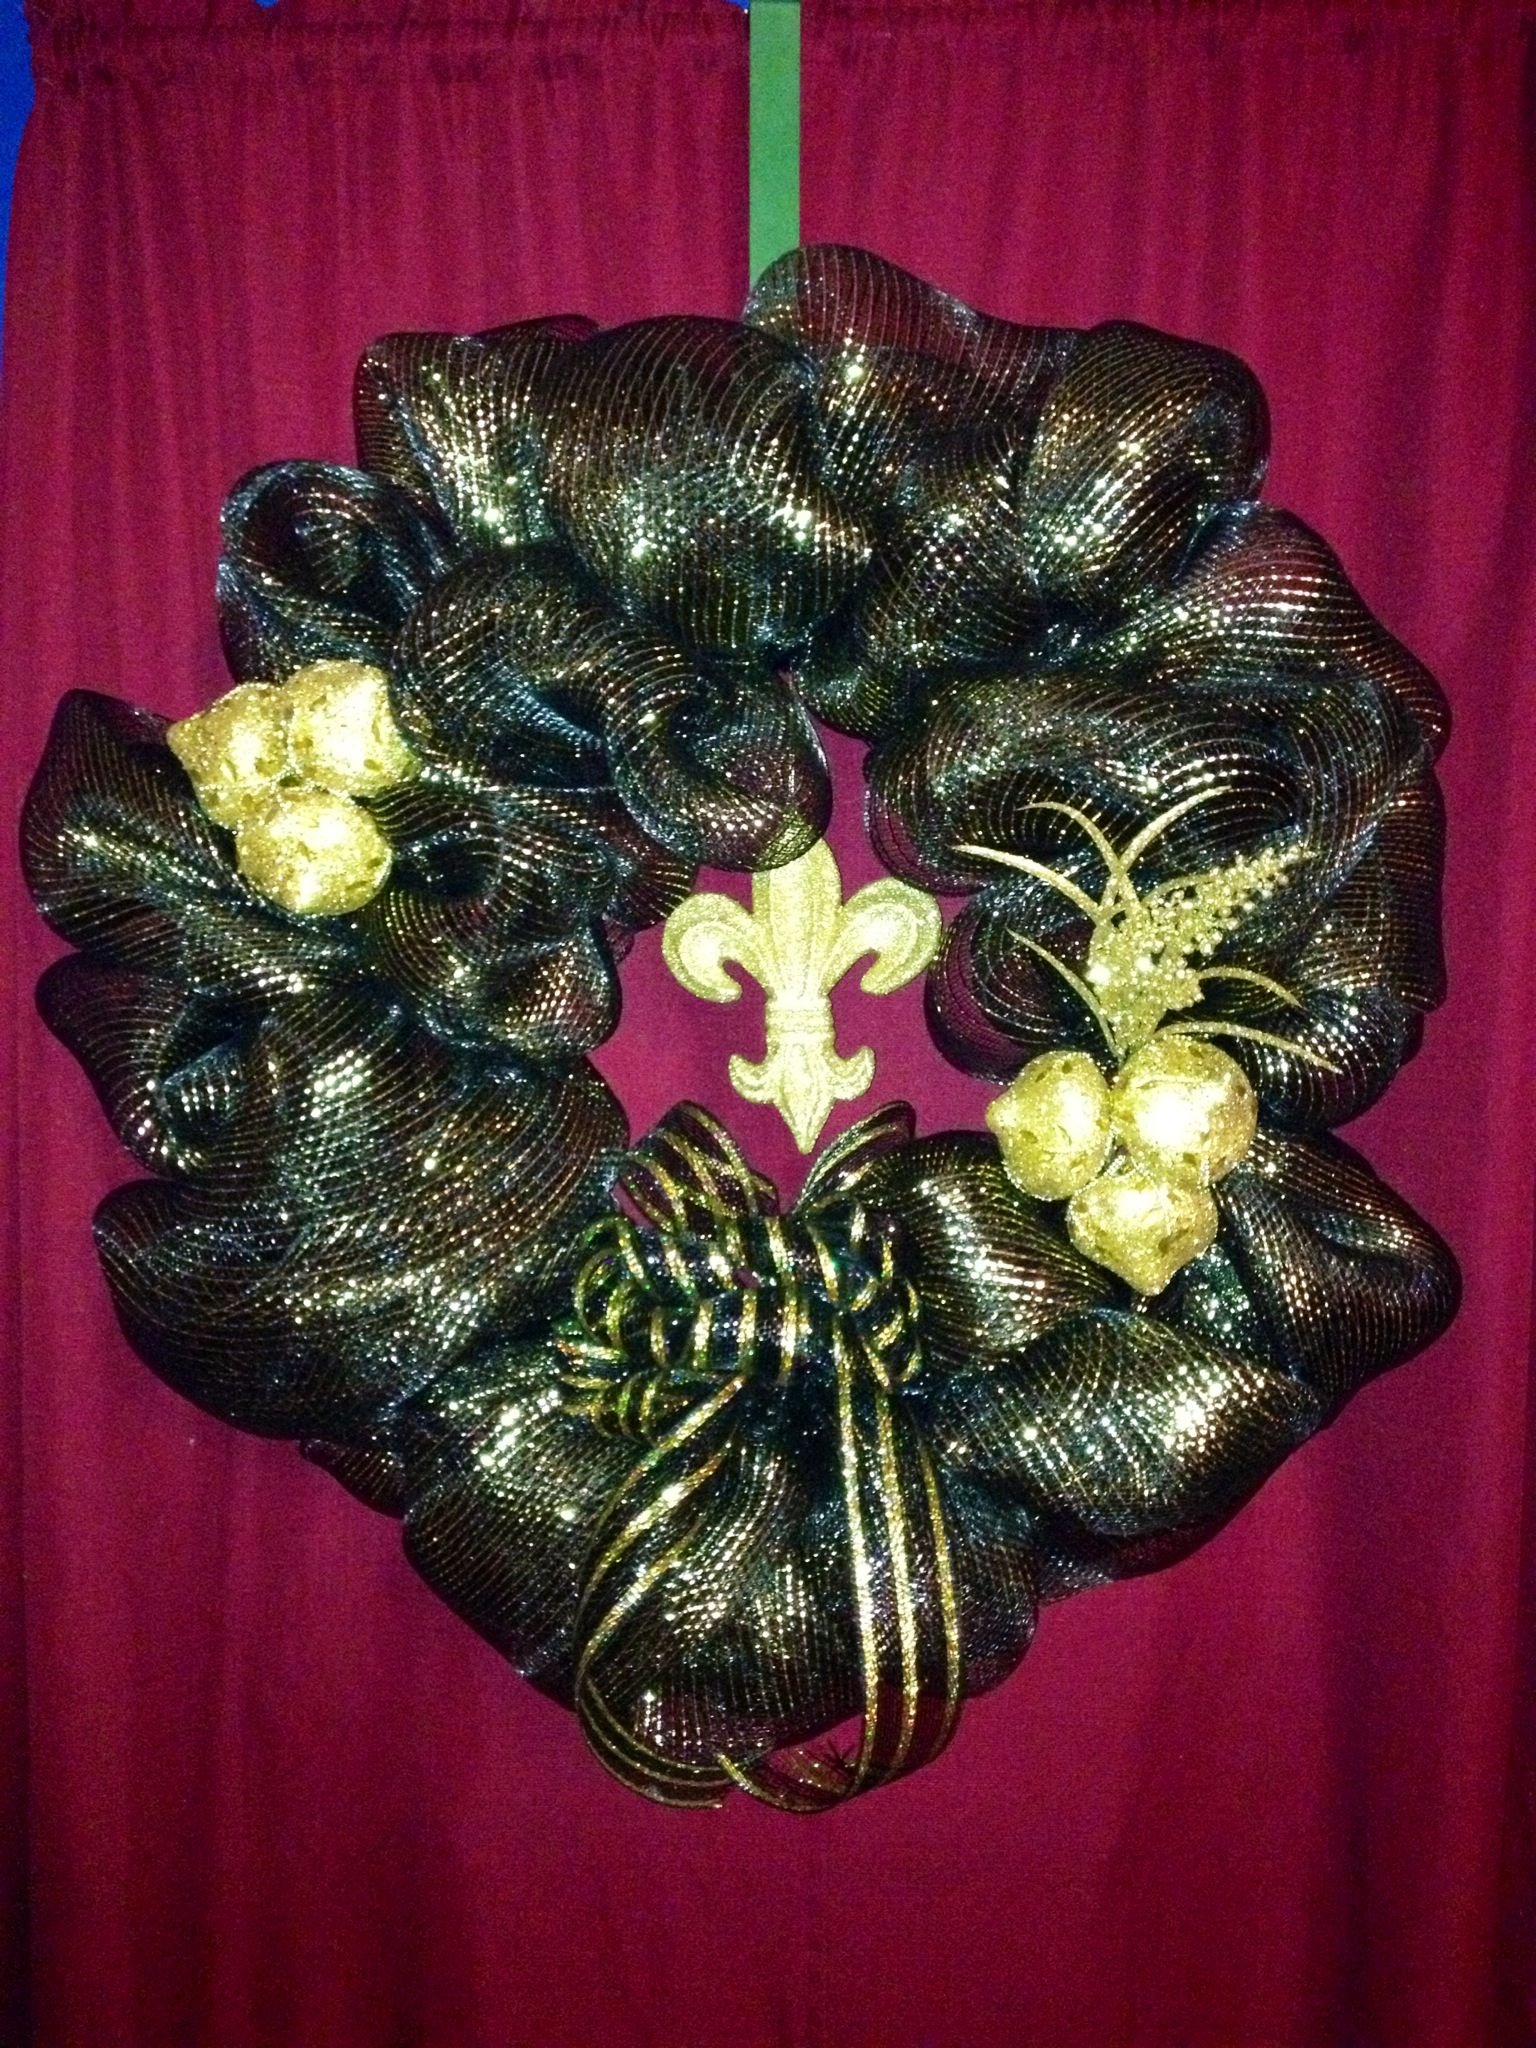 New Orleans Saints Wreath I Made My Friend Tina For Her Birthday